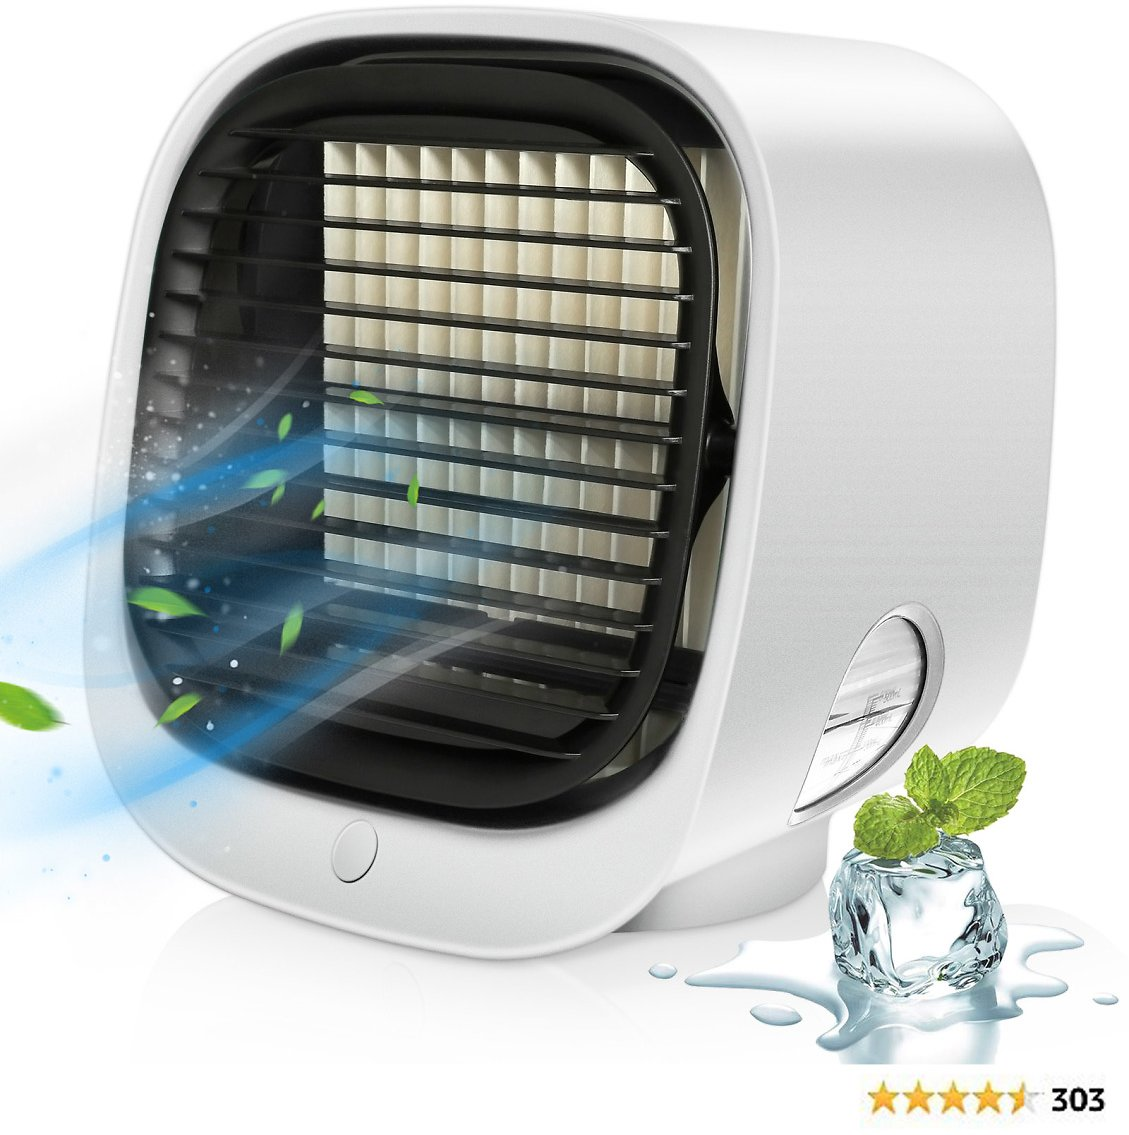 Portable Air Conditioner, Mini Personal Air Cooler Desk Small AC Unit with LED Light USB 3 Speeds Fan